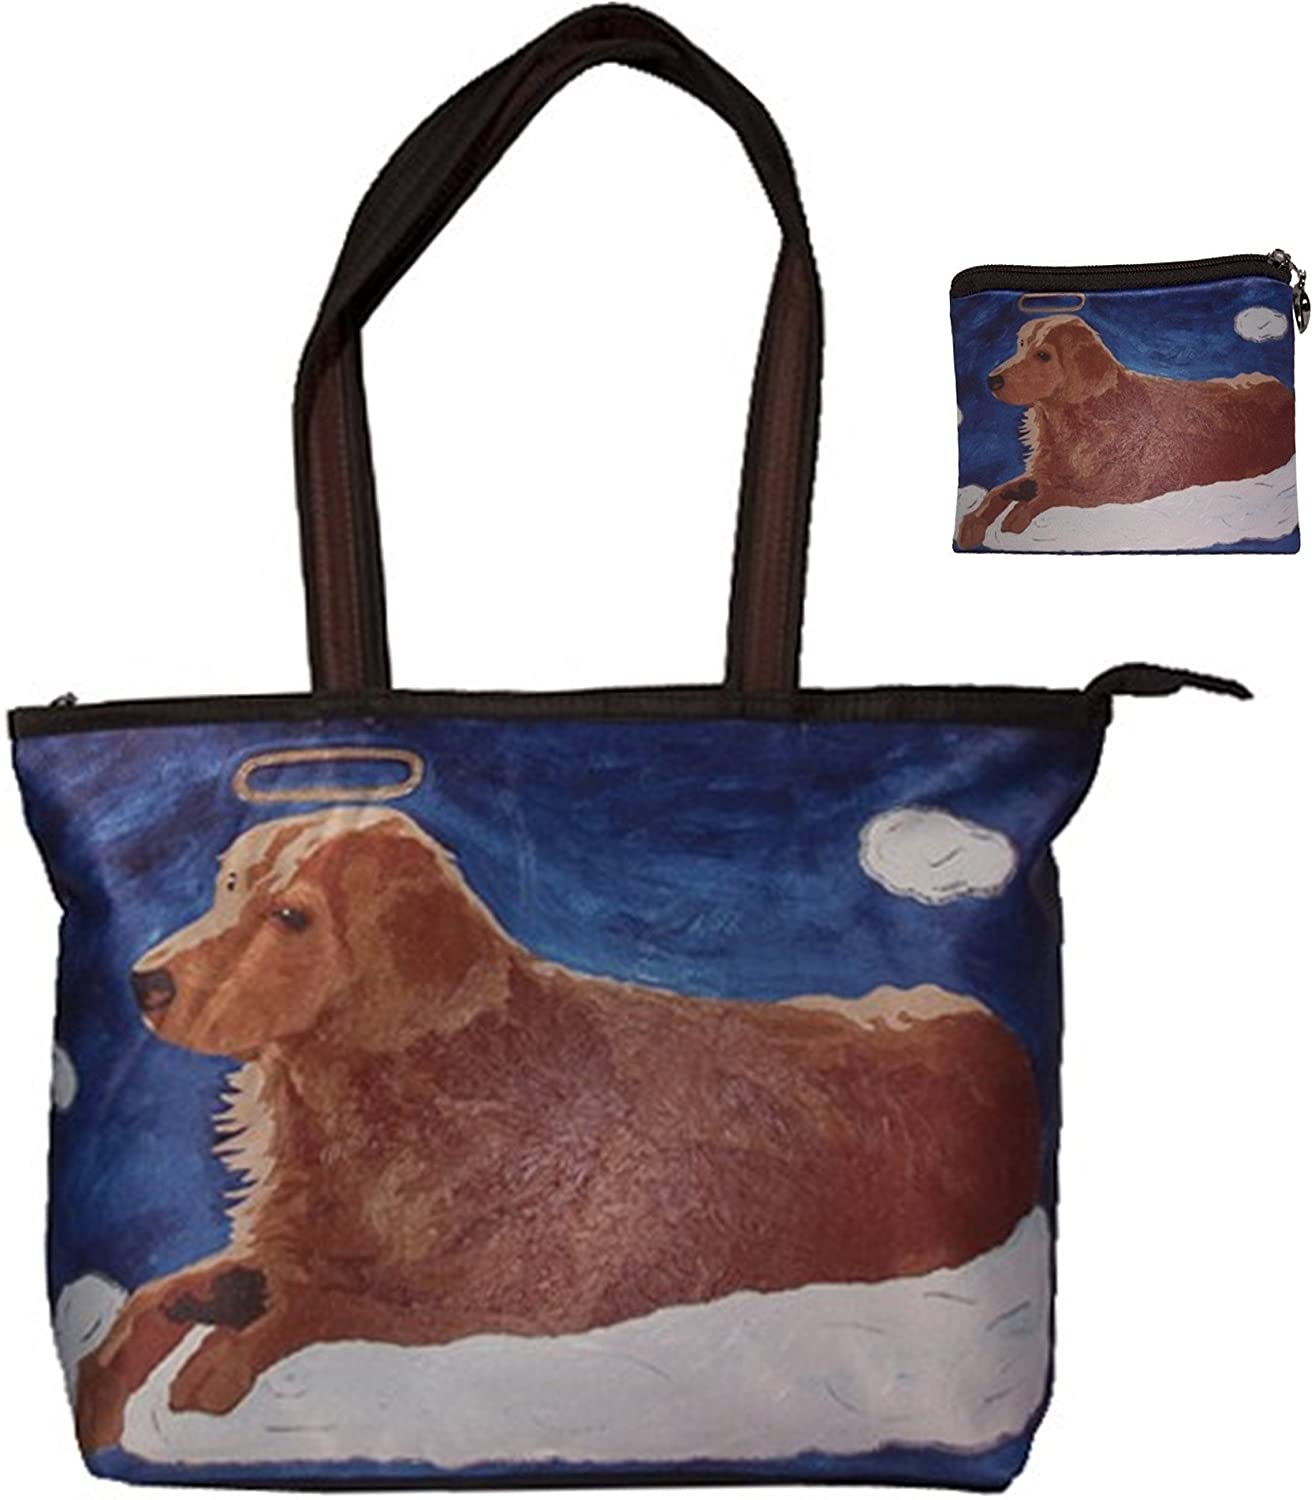 Dog Angel Gift Set - Shoulder Bag and Matching Coin Purse- Great Hoilday Set - From My Original Painting, Ginger  Clothing